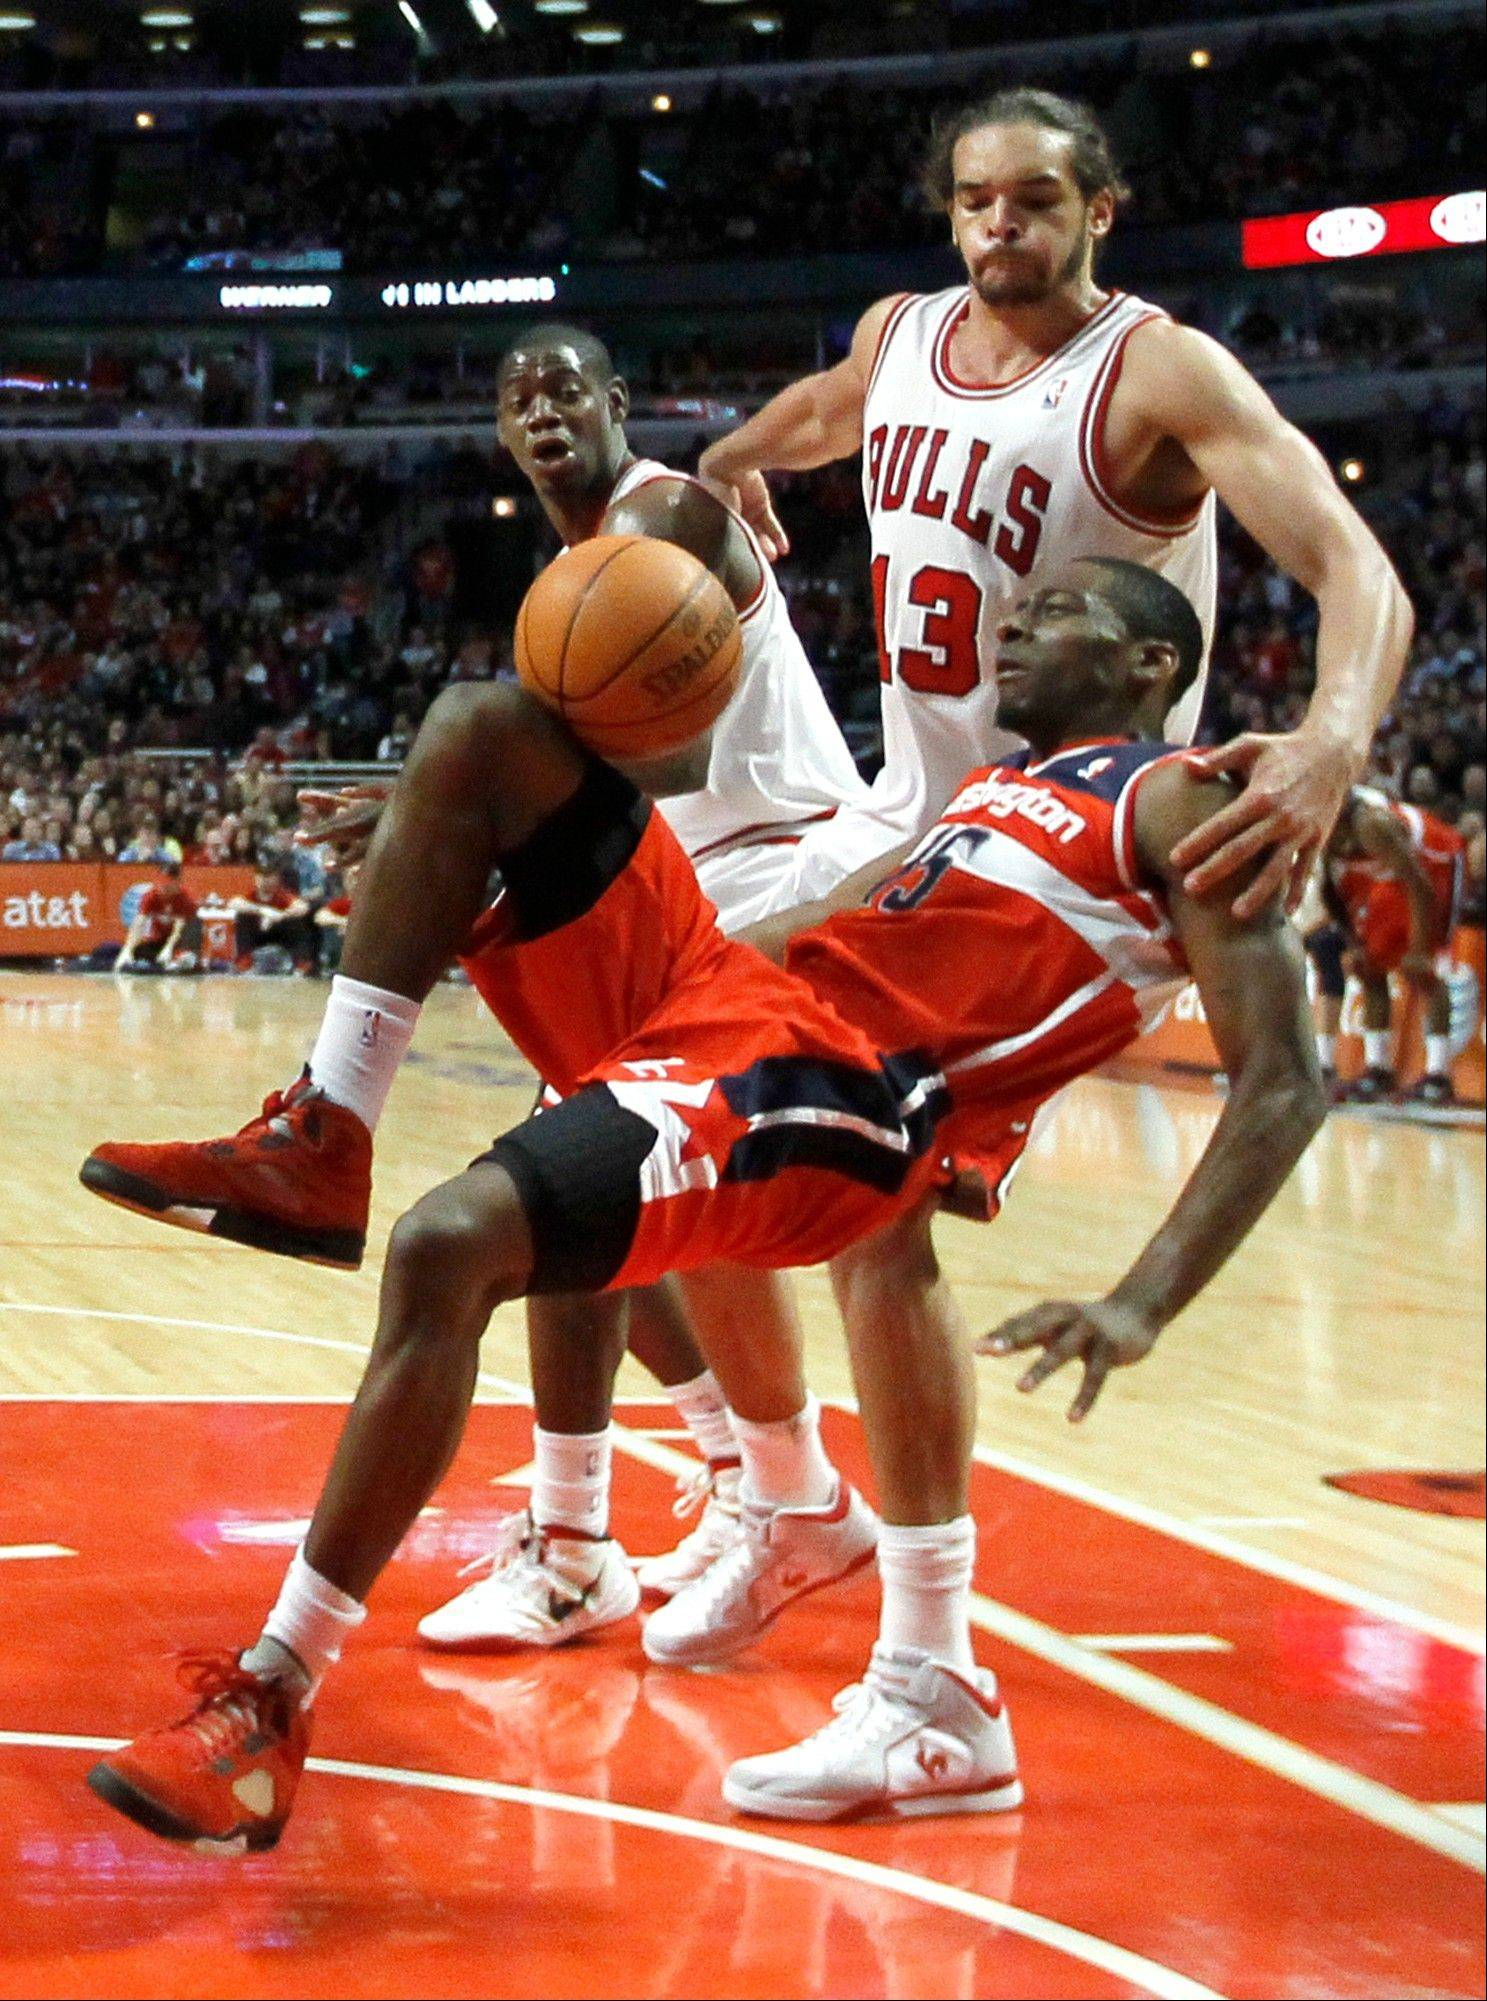 The Wizards' Jordan Crawford loses his footing and the ball after being fouled by Joakim Noah of the Bulls during action at the United Center on Monday night.